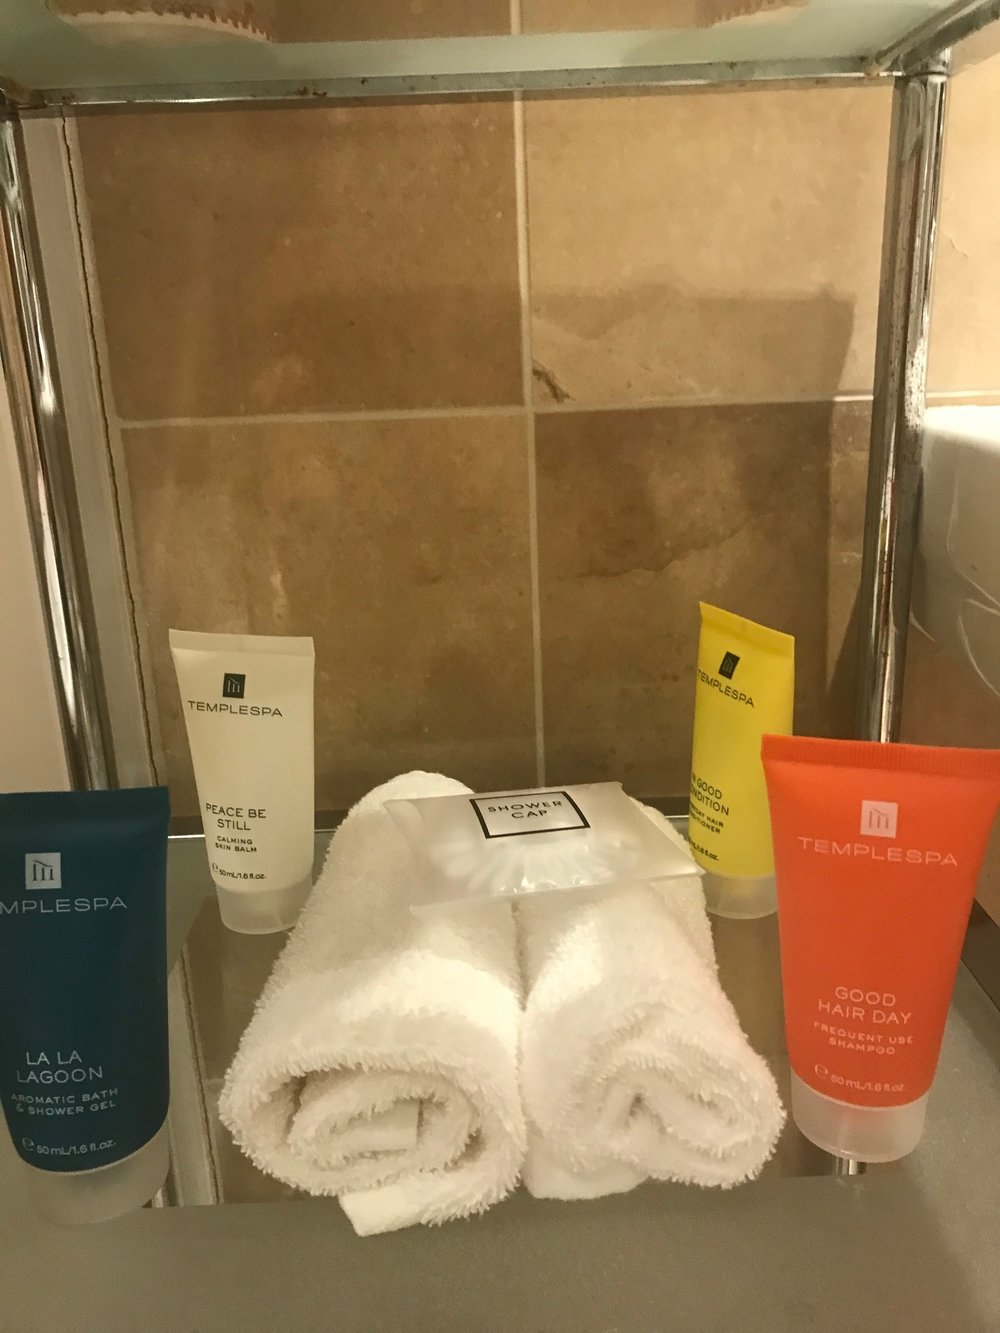 temple spa bathroom.jpg